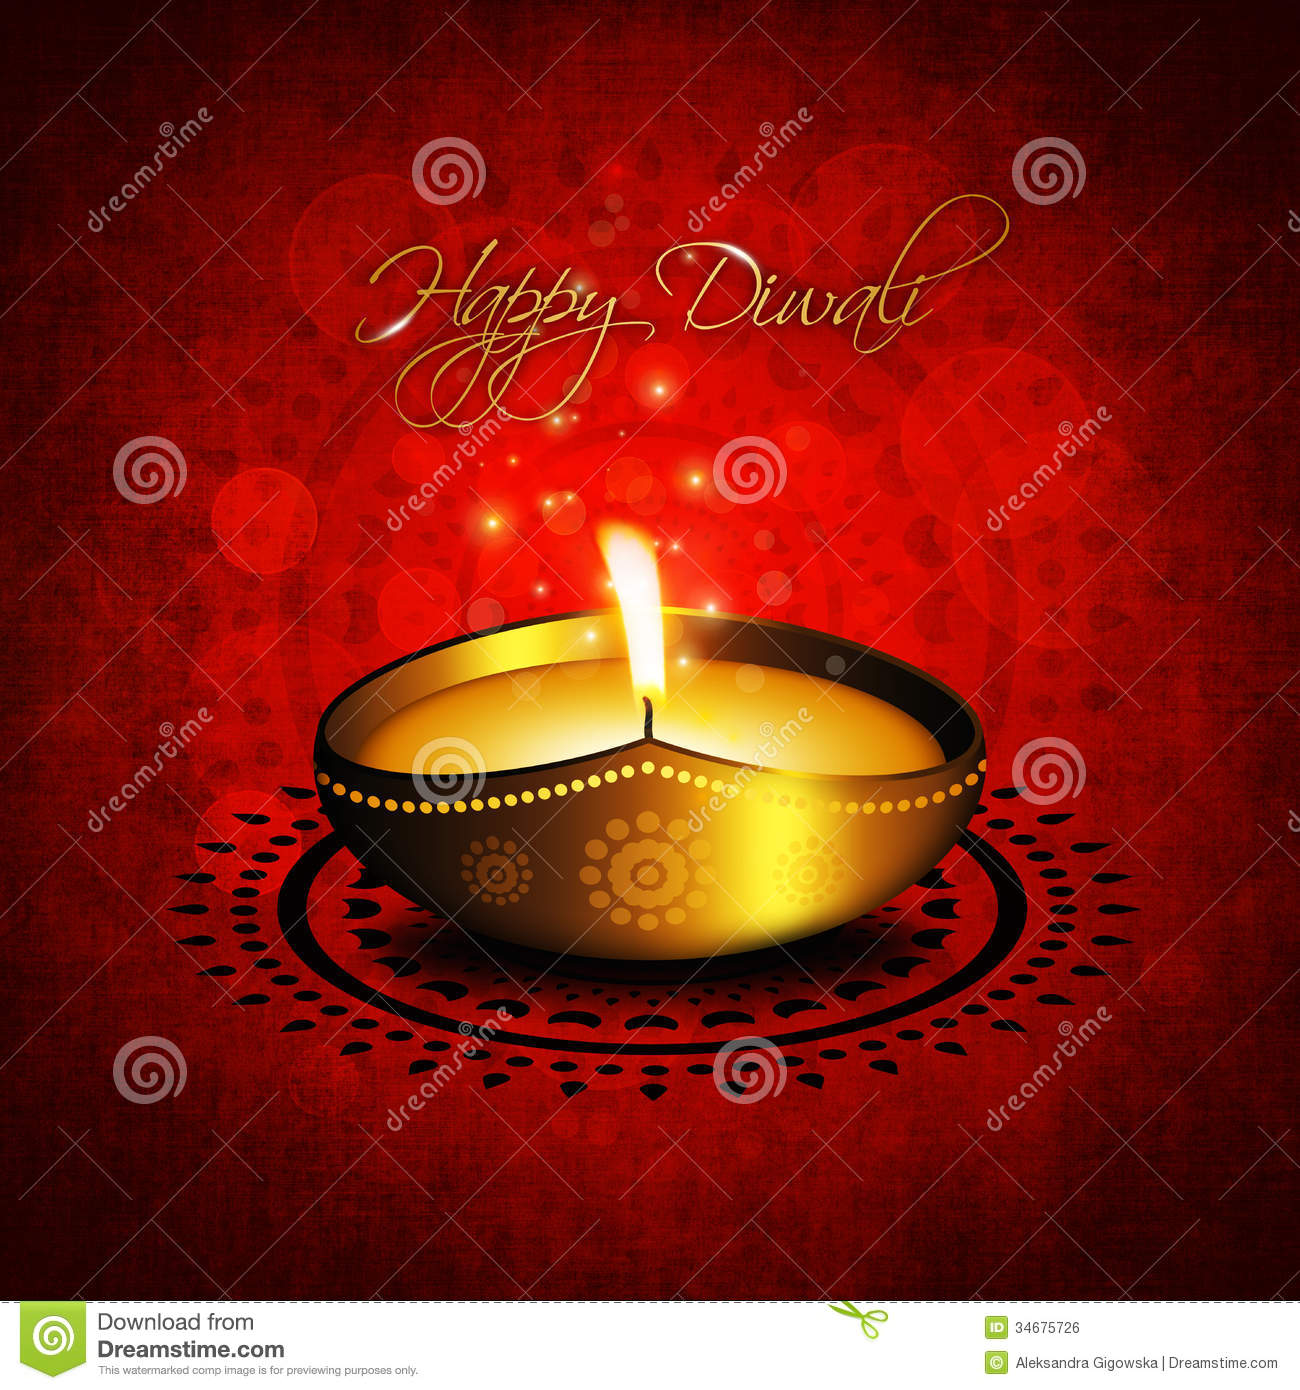 Deepavali festival greetings pictures